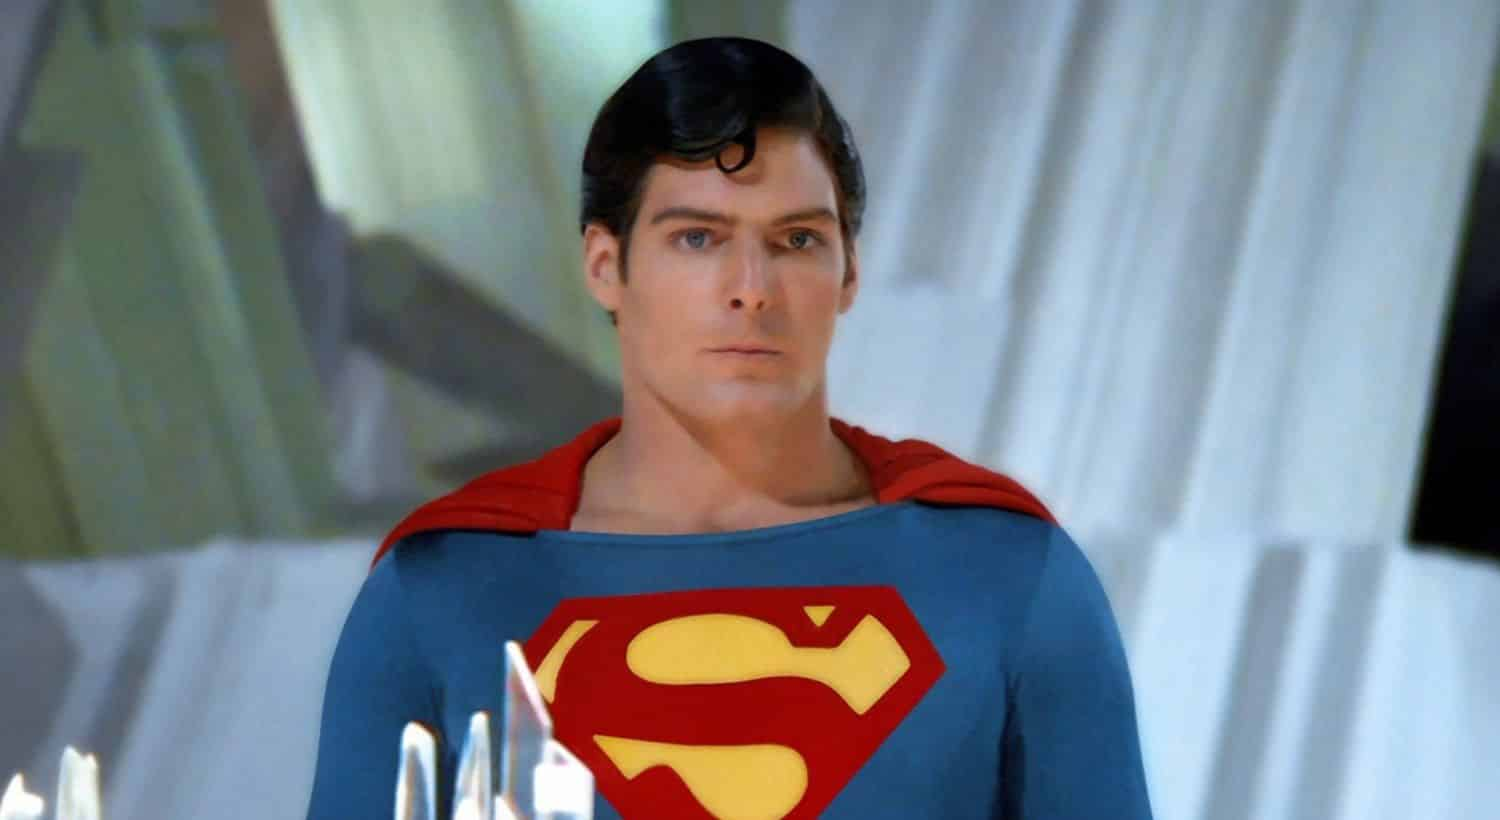 influence Richard Donner Superman II Man of Steel DCEU DC Extended Universe Zack Snyder's Justice League